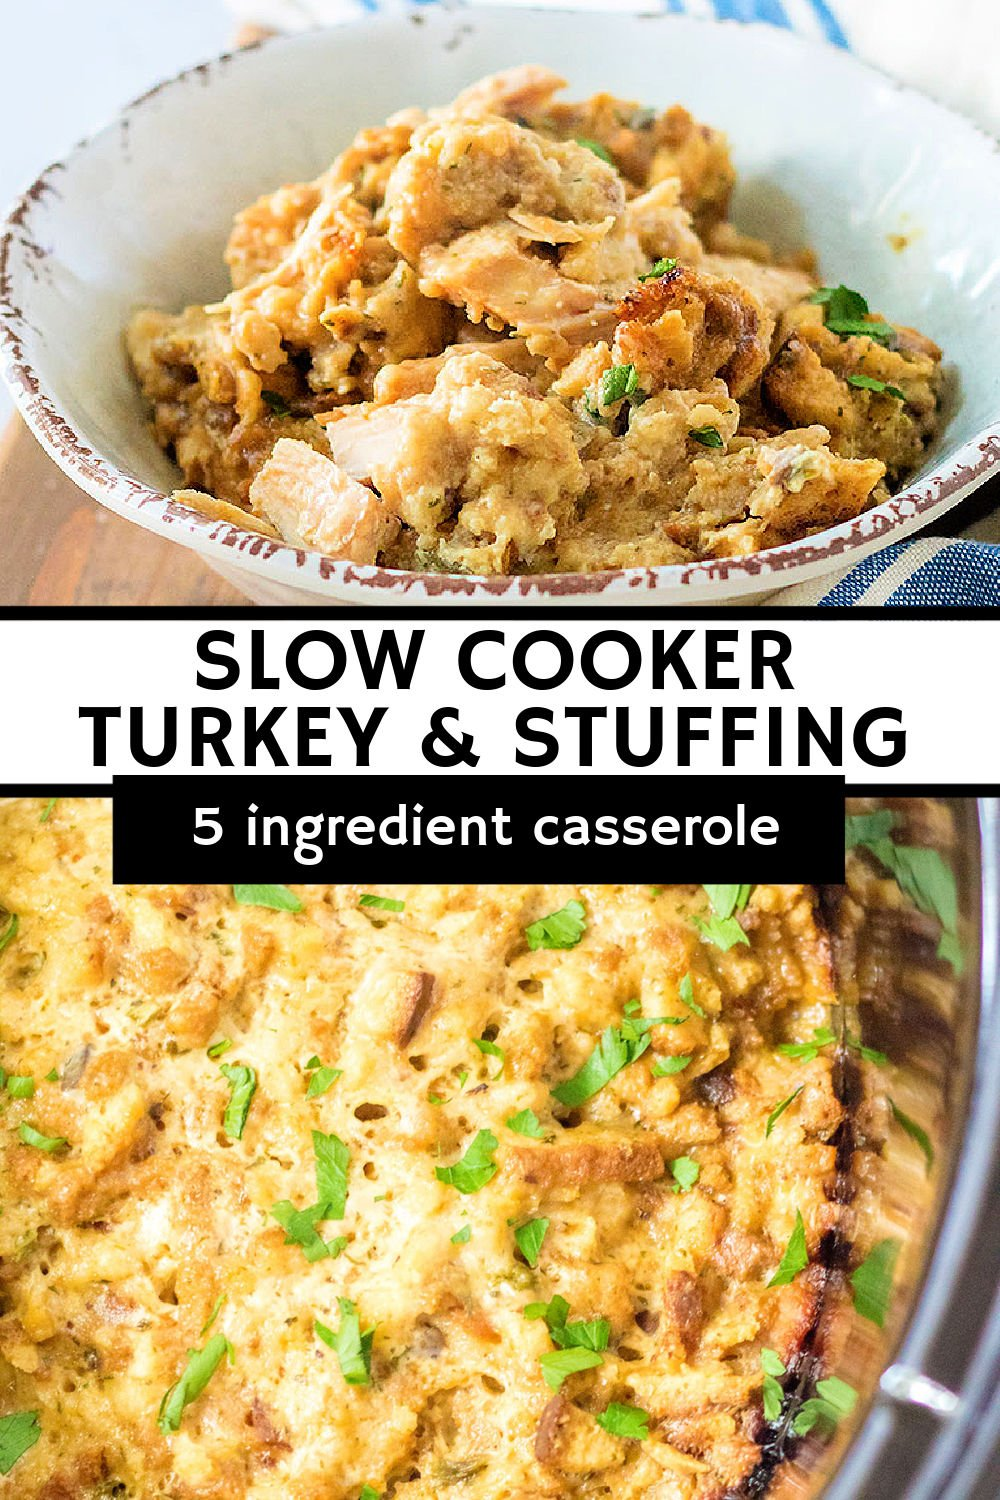 Tender, juicy turkey breast slow cooked with flavor-rich herb stuffing, creamy cream of chicken soup, tangy sour cream, and hearty chicken stock makes the perfect easy weeknight dinner that is both filling and comforting. | www.persnicketyplates.com